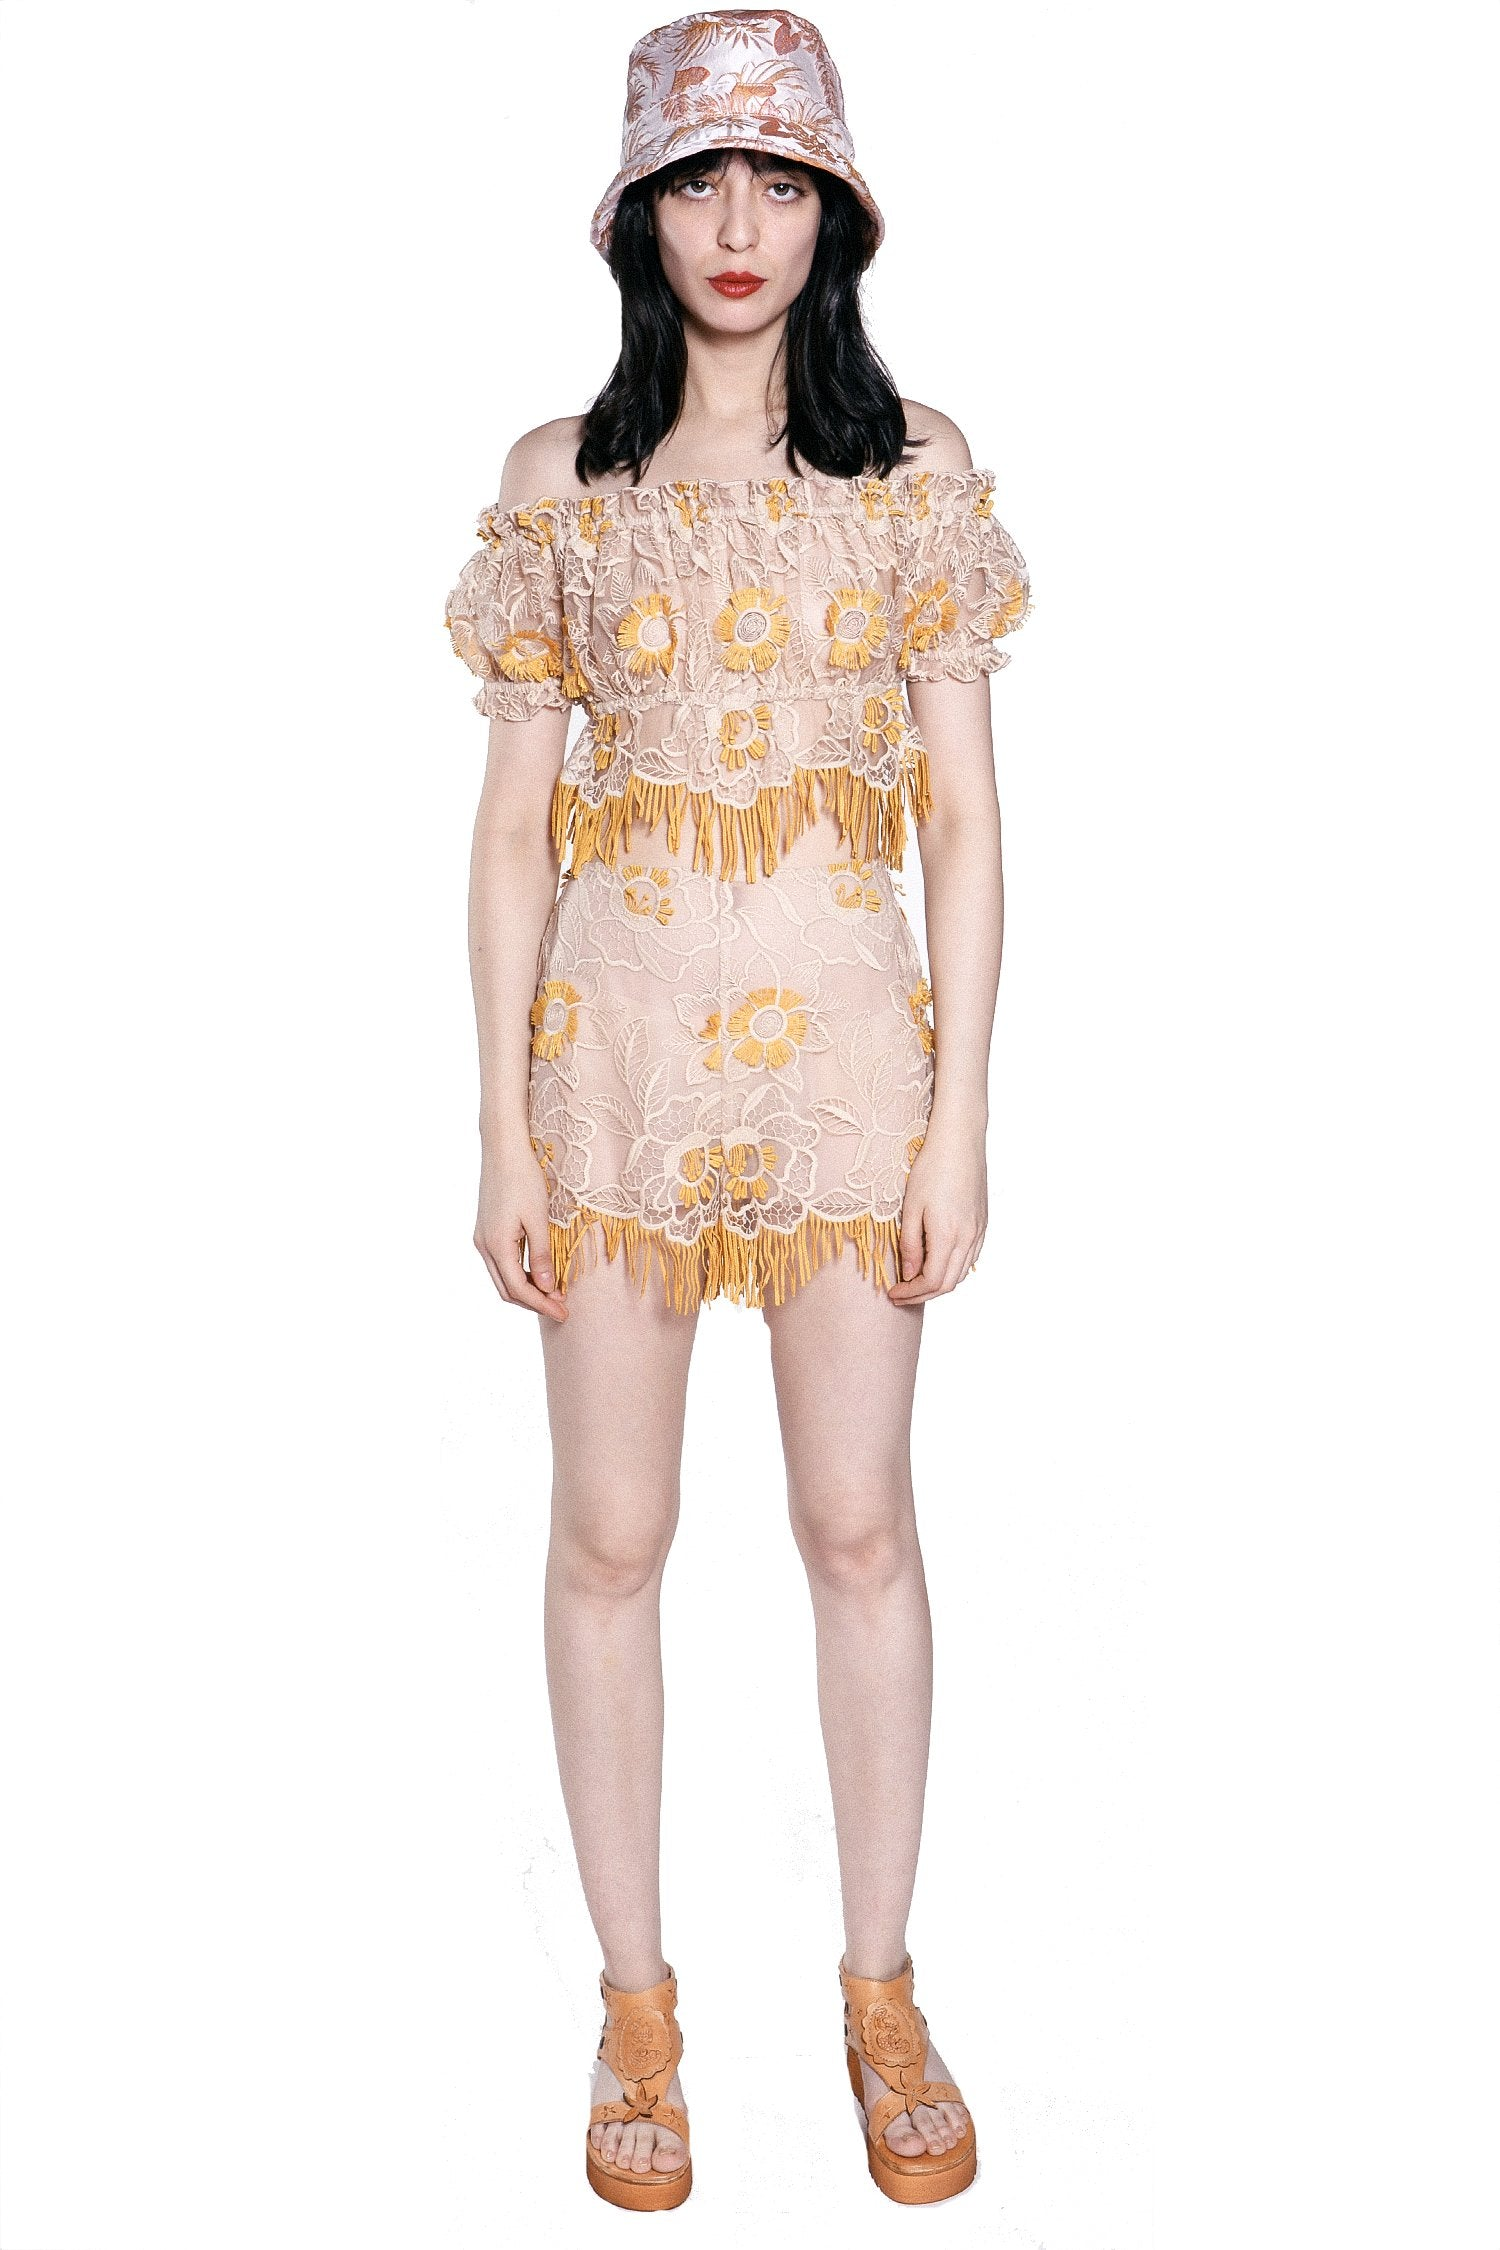 Lotus Flower Embroidered Top - Anna Sui